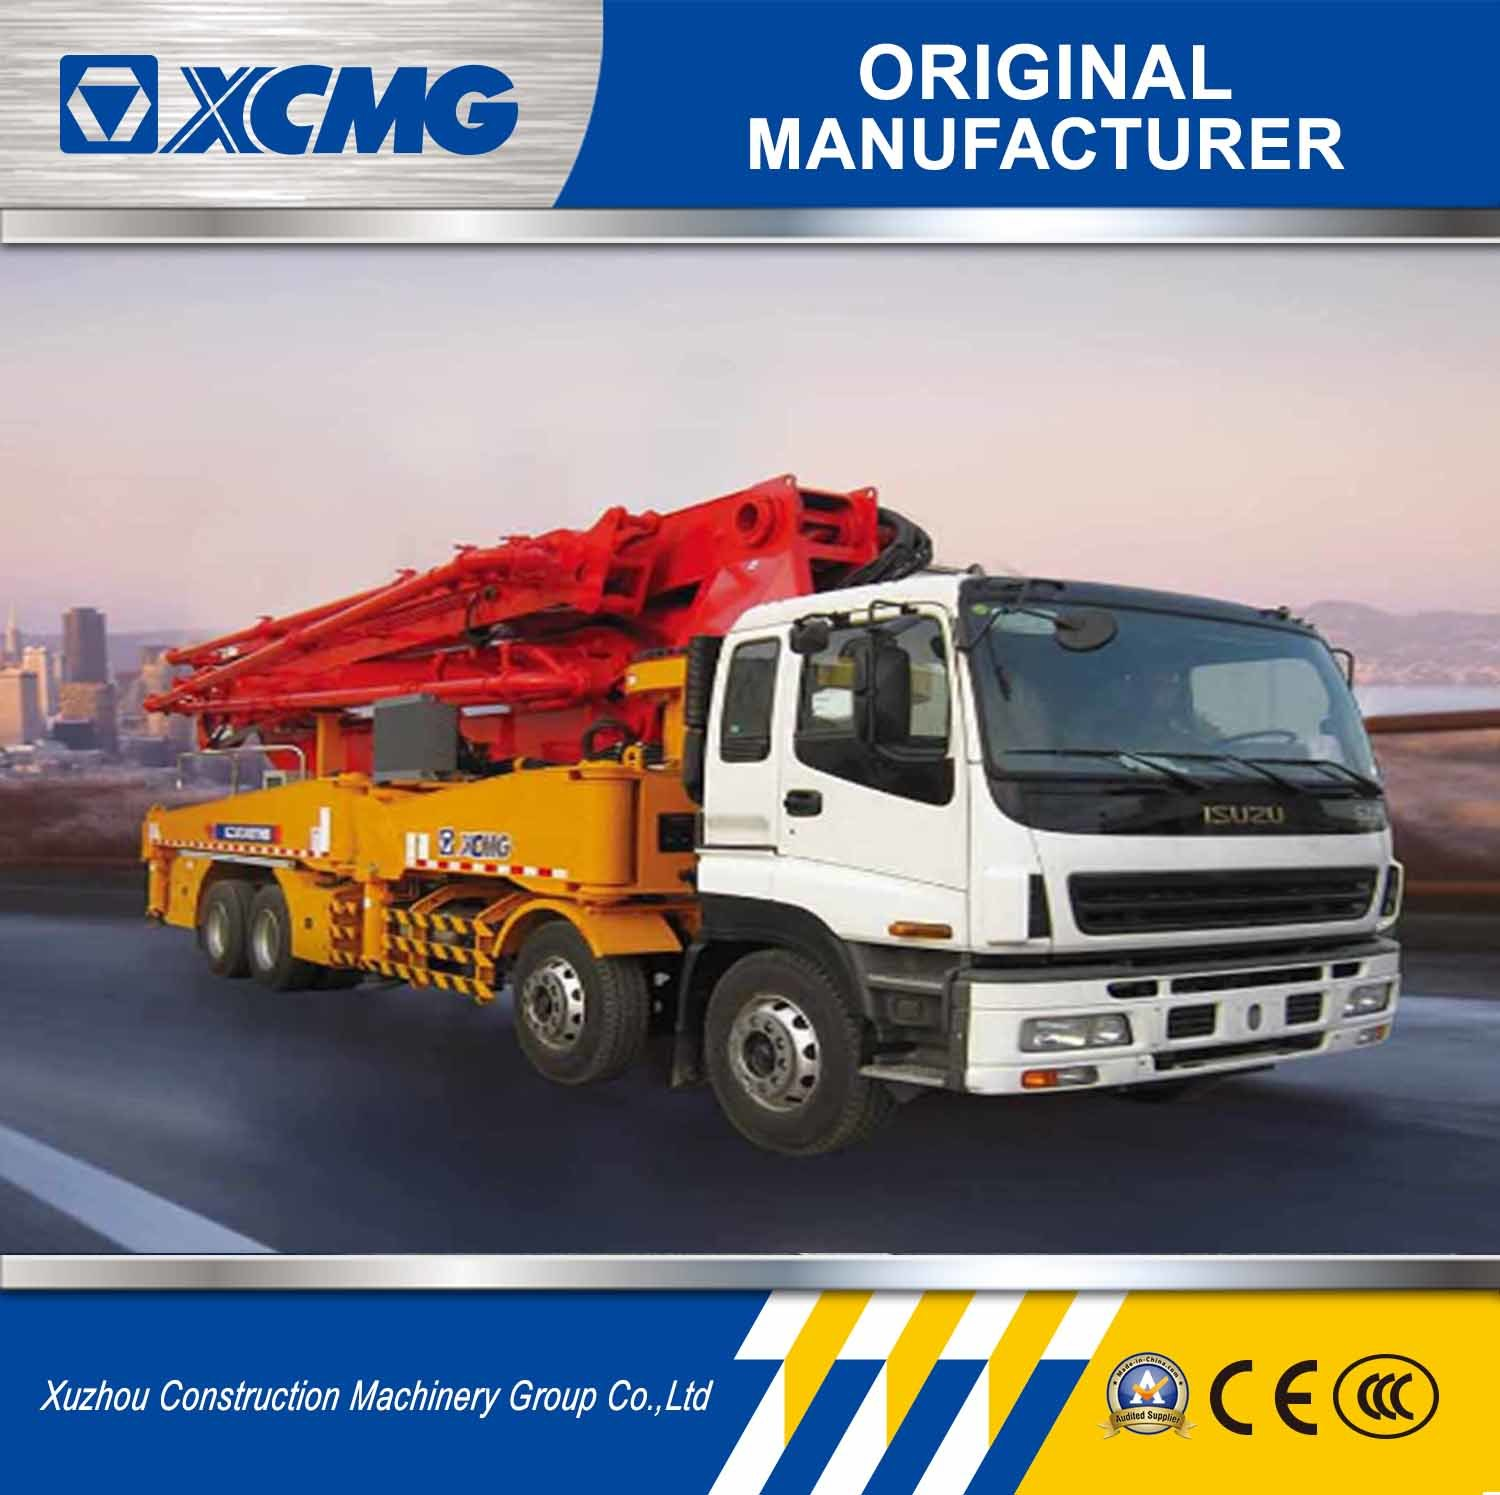 XCMG Official Manufacturer Hb46A 46m Truck Mounted Concrete Hydraulic Pump